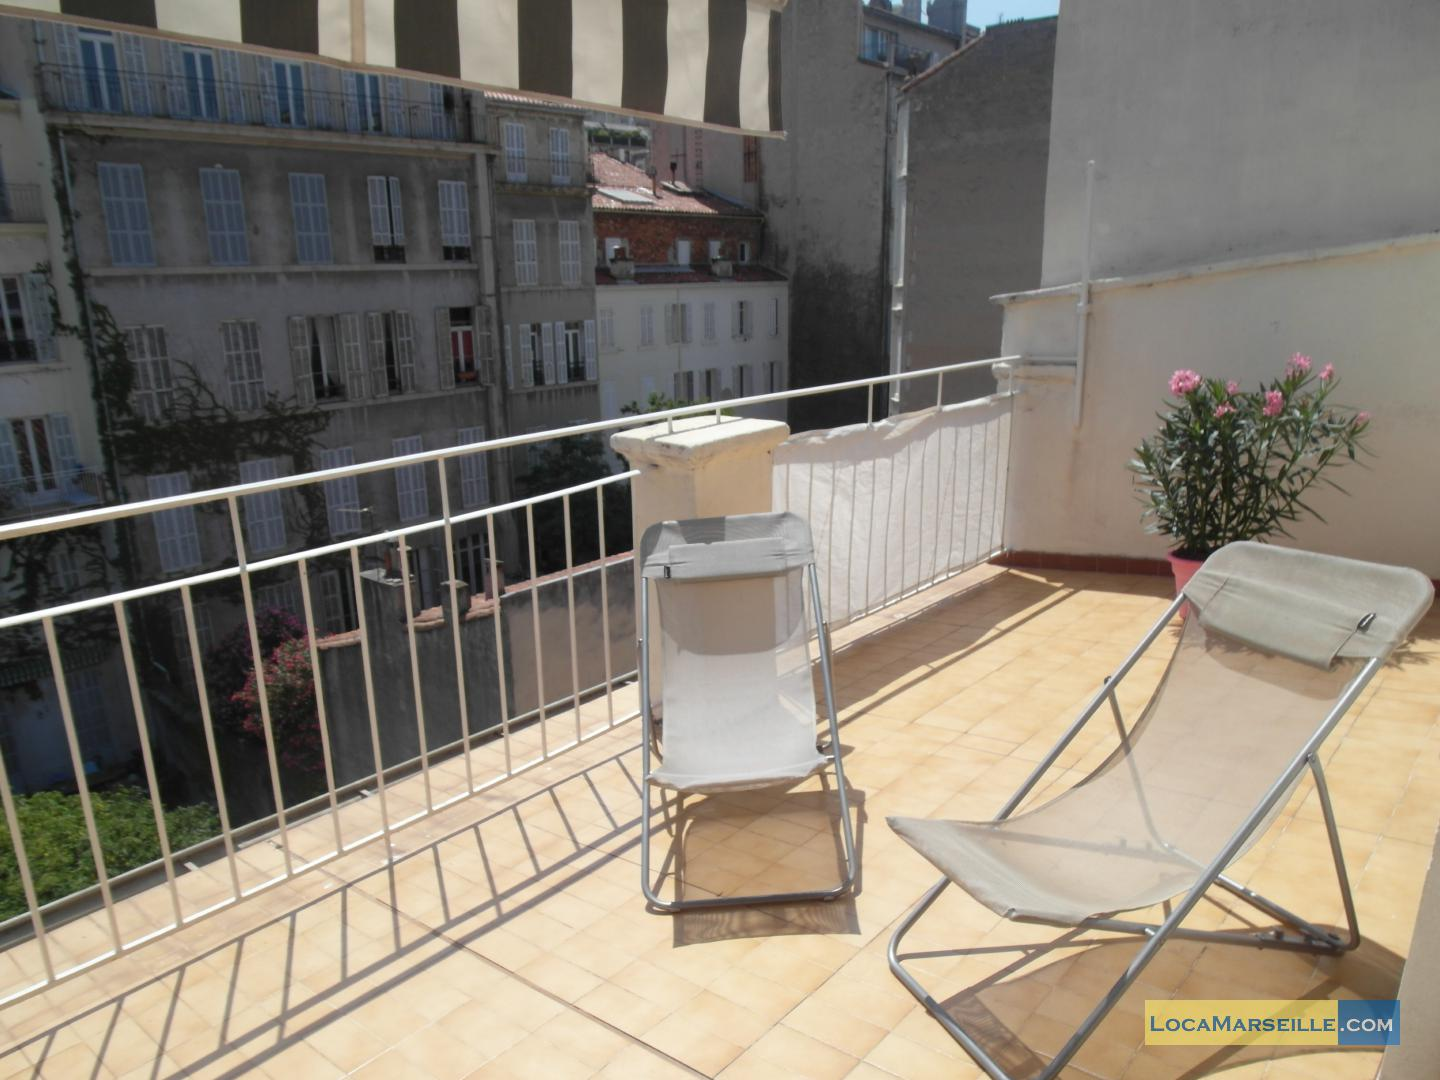 Marseille location meubl e appartement type t2 terrasse for T2 marseille terrasse